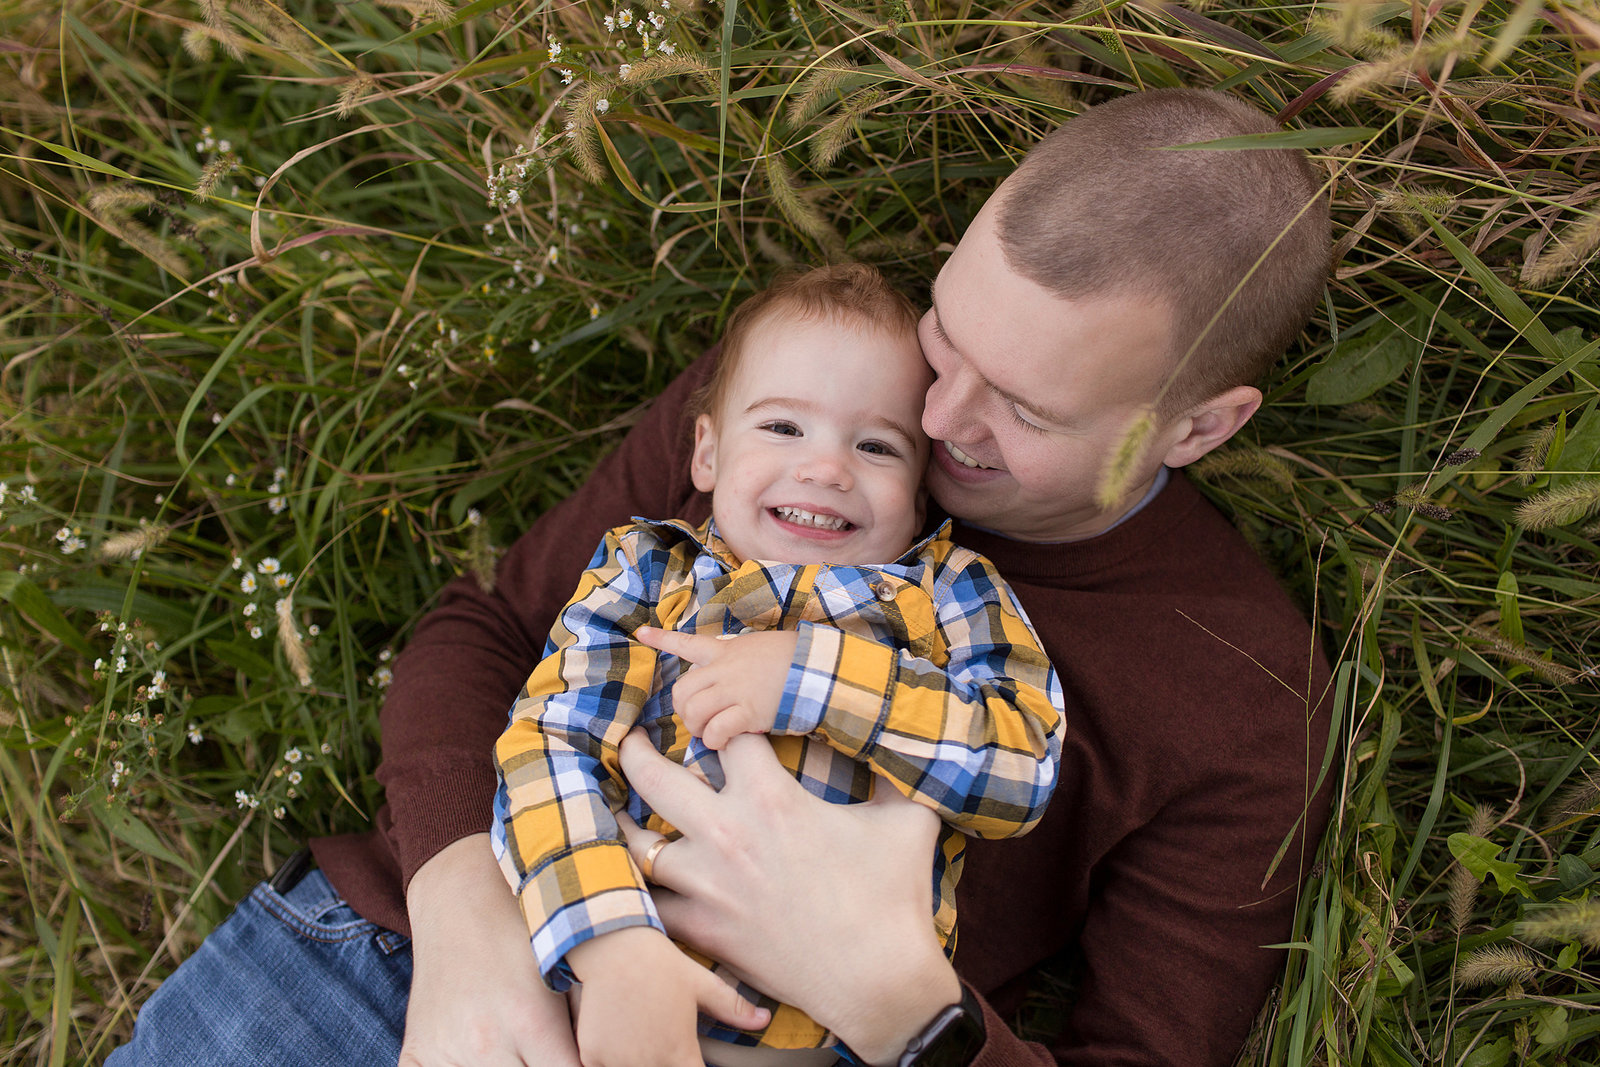 Dad tickles little smiling boy in long green grass